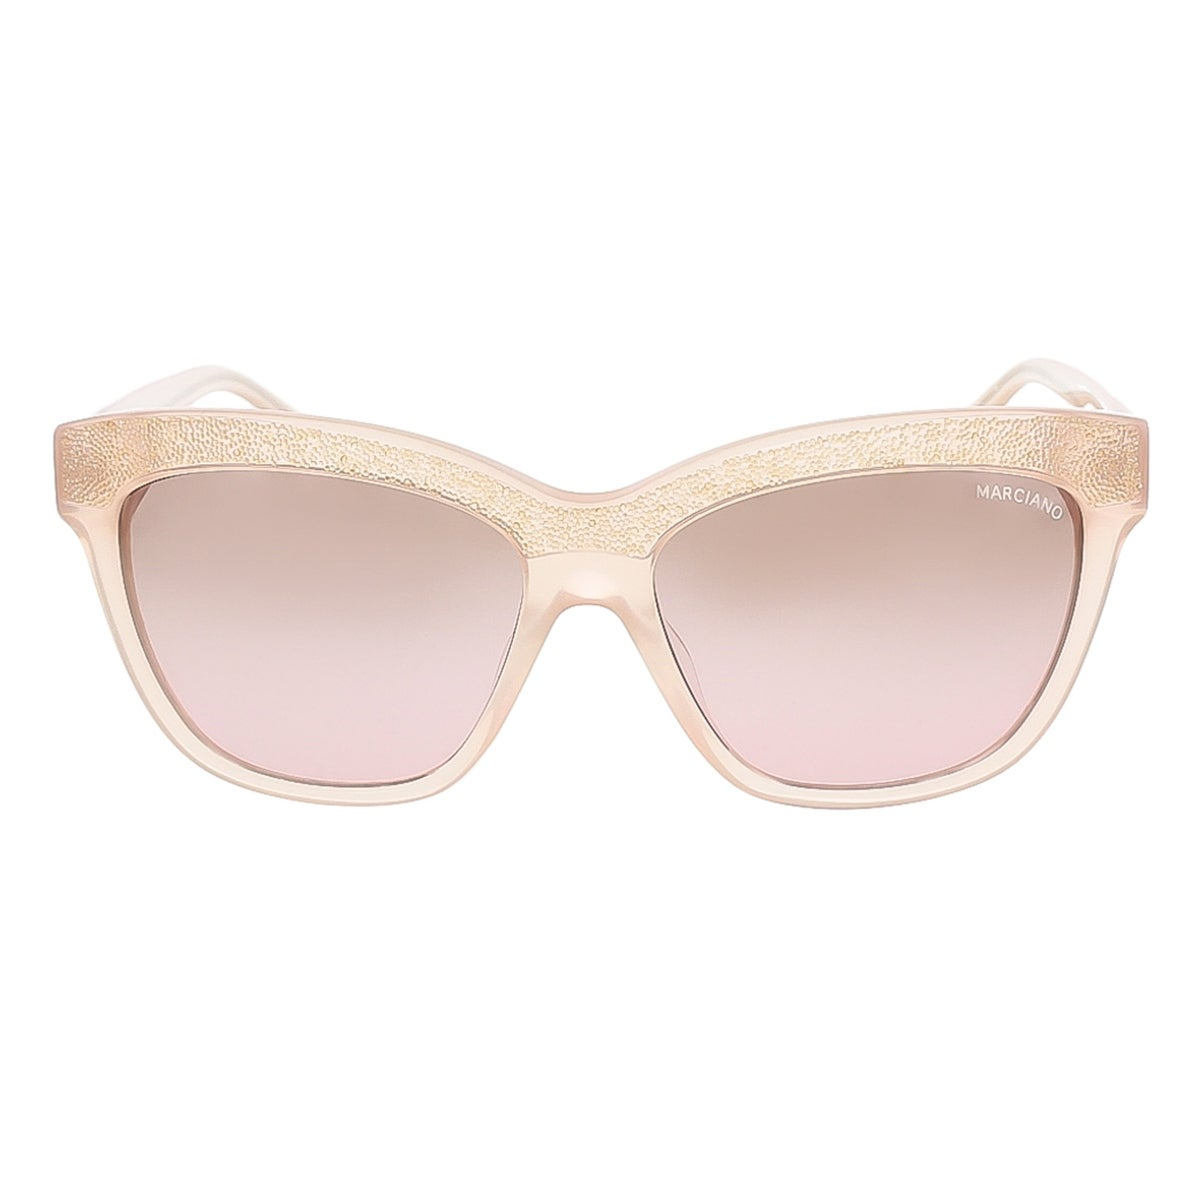 01a6bcf8a7 Shop Guess by Marciano GM0729 74F Blush Pink Rectangle sunglasses -  57-15-135 - Free Shipping On Orders Over  45 - Overstock - 13402501